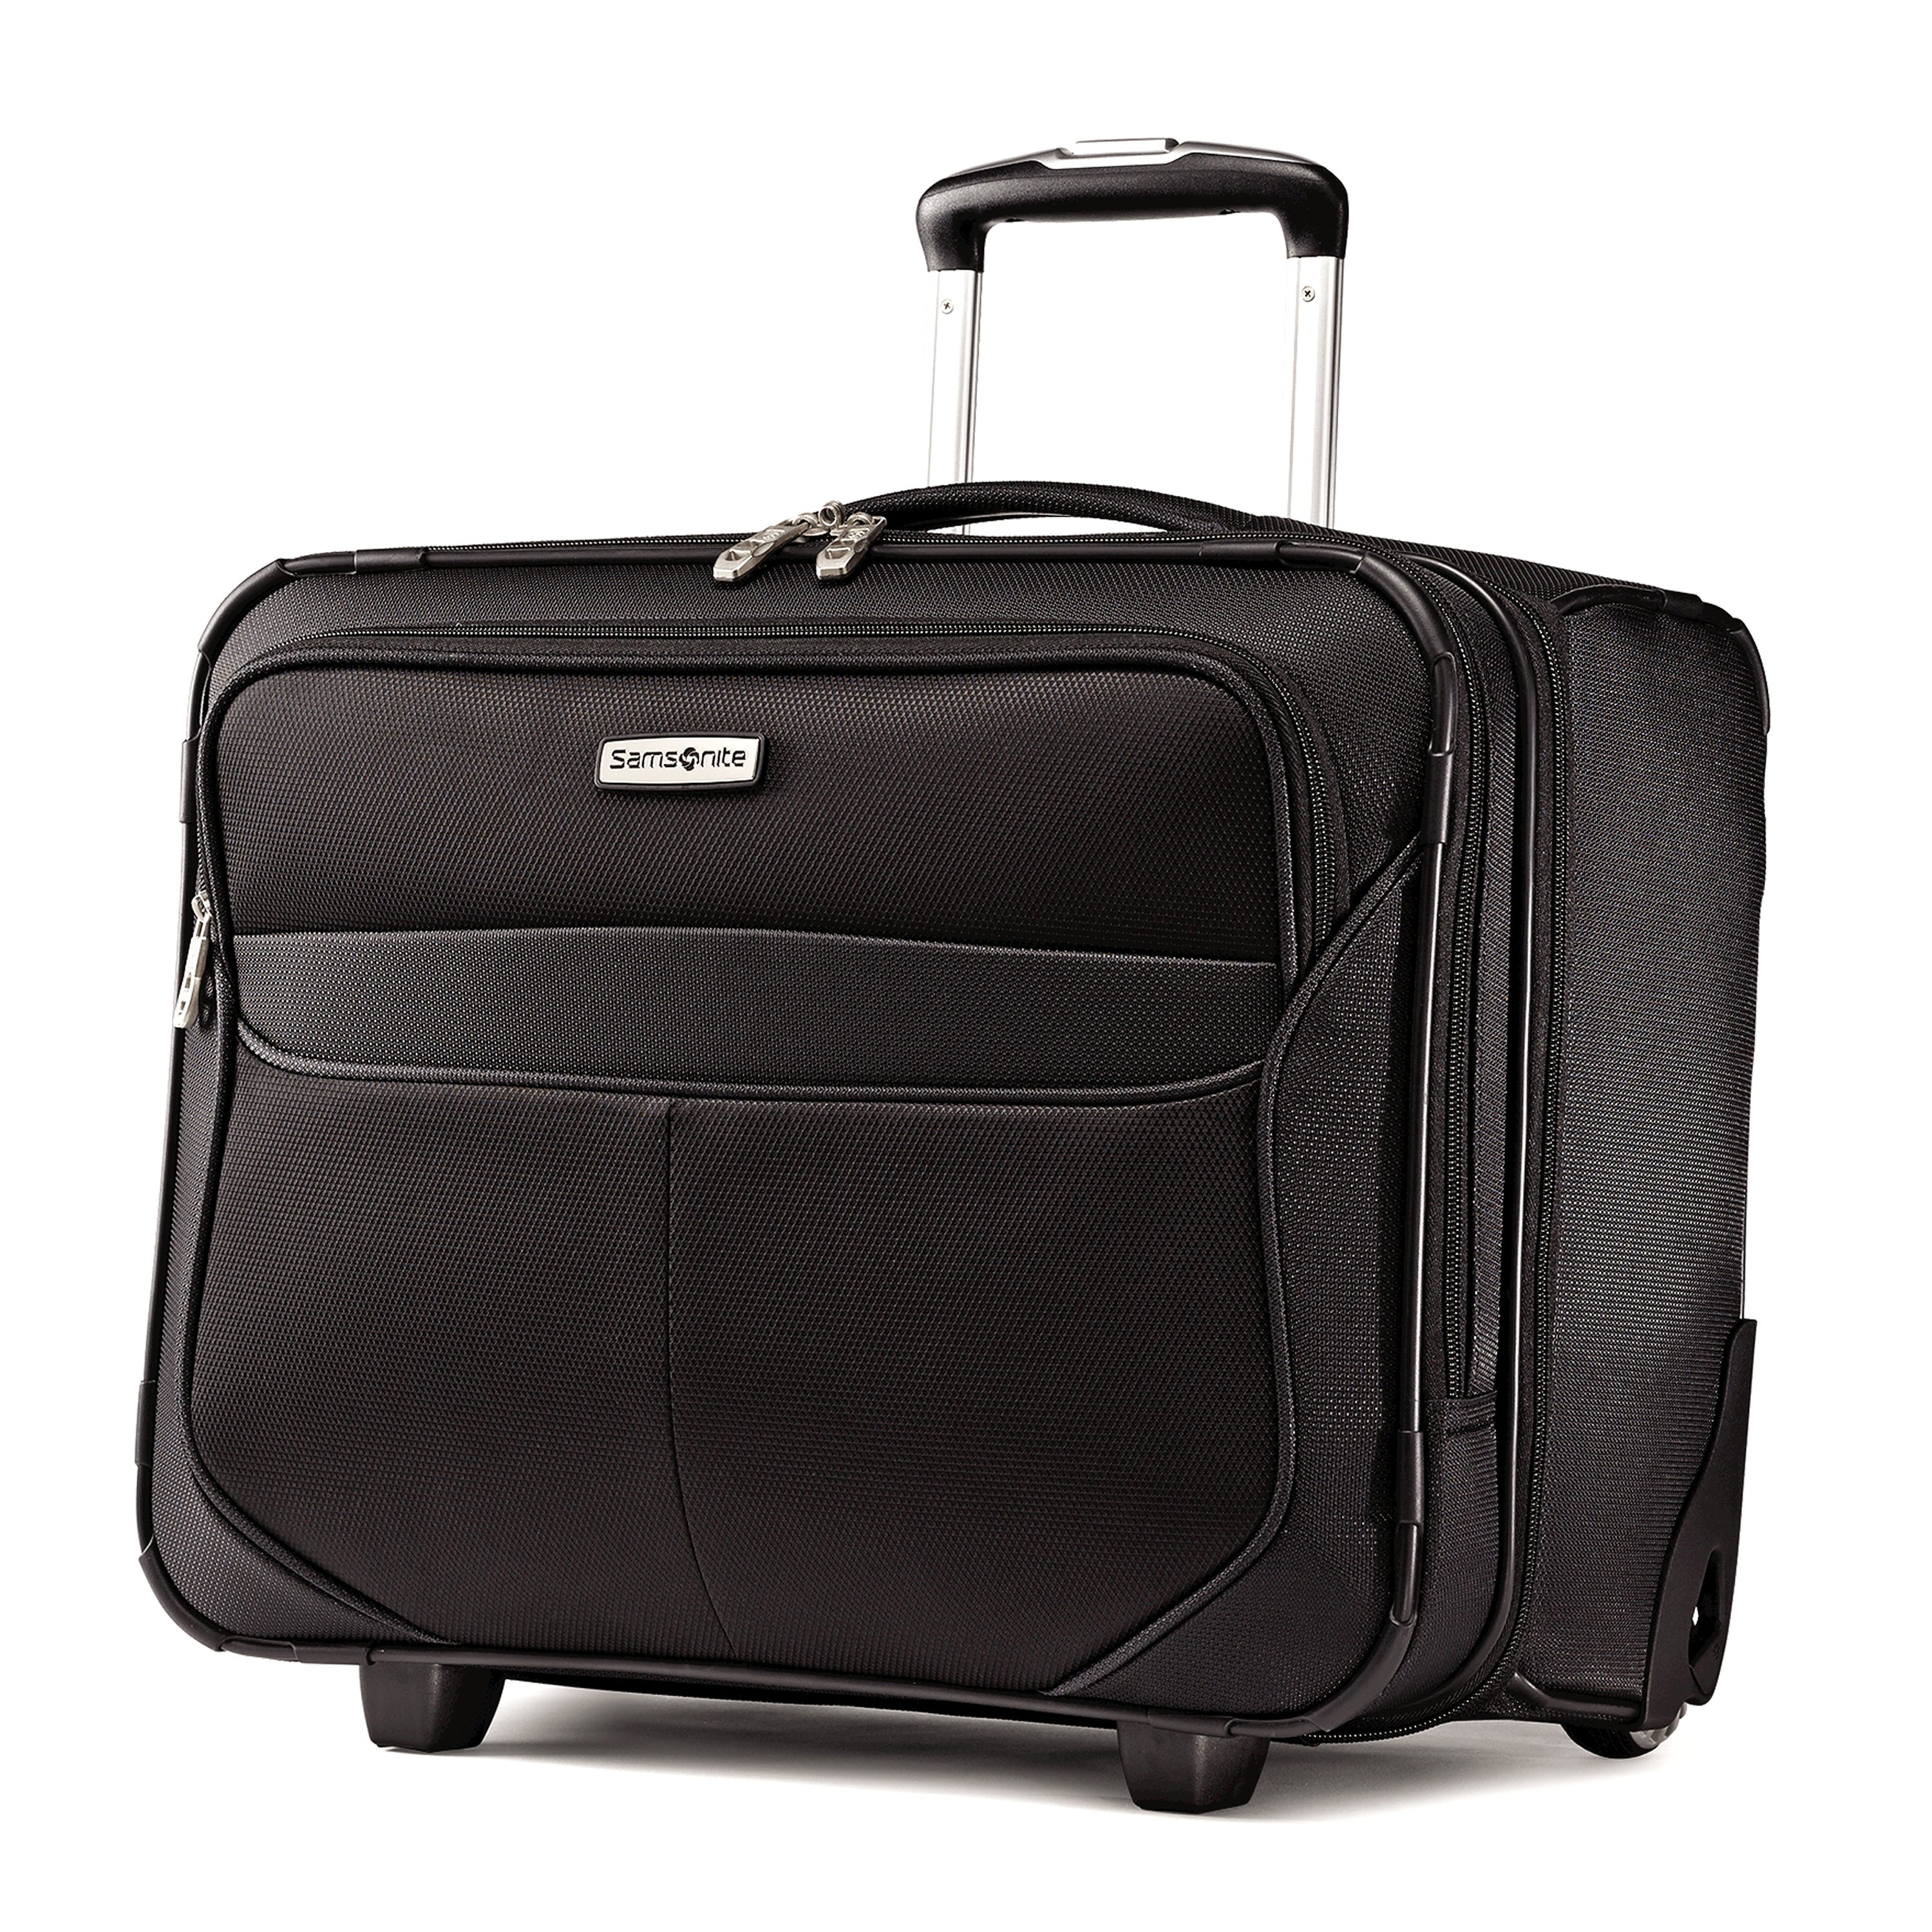 Samsonite For over years, Samsonite has created unique luggage and innovative solutions for frequent travelers, including but not limited to rolling and spinner luggage, laptop bags, backpacks, and travel accessories.